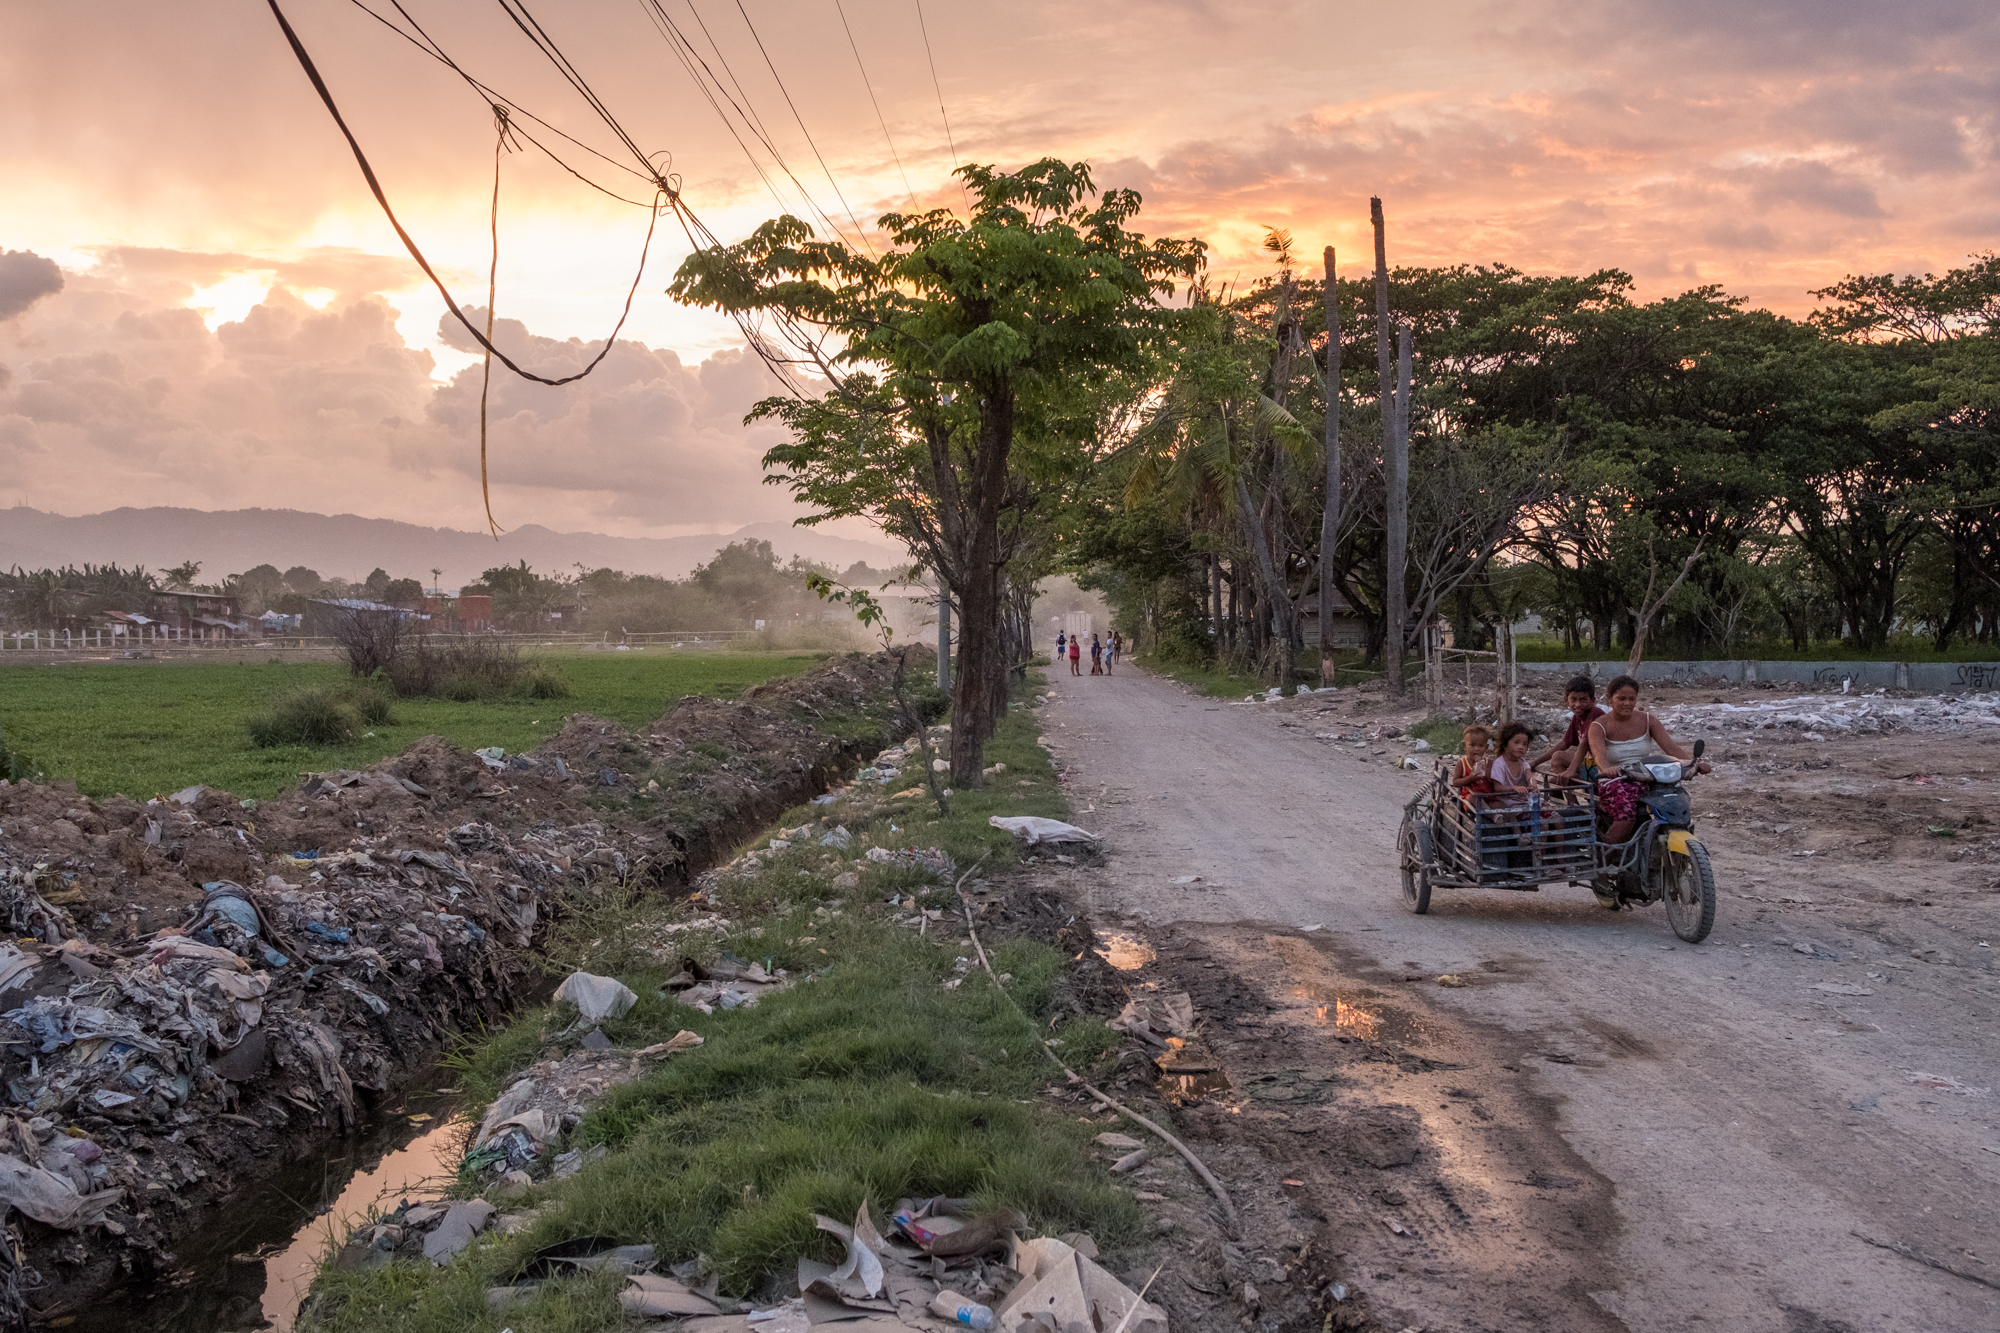 A colorful sunset illuminates the sky as people drive along a road near the Mandaue Dump Site in Cebu, Philippines.